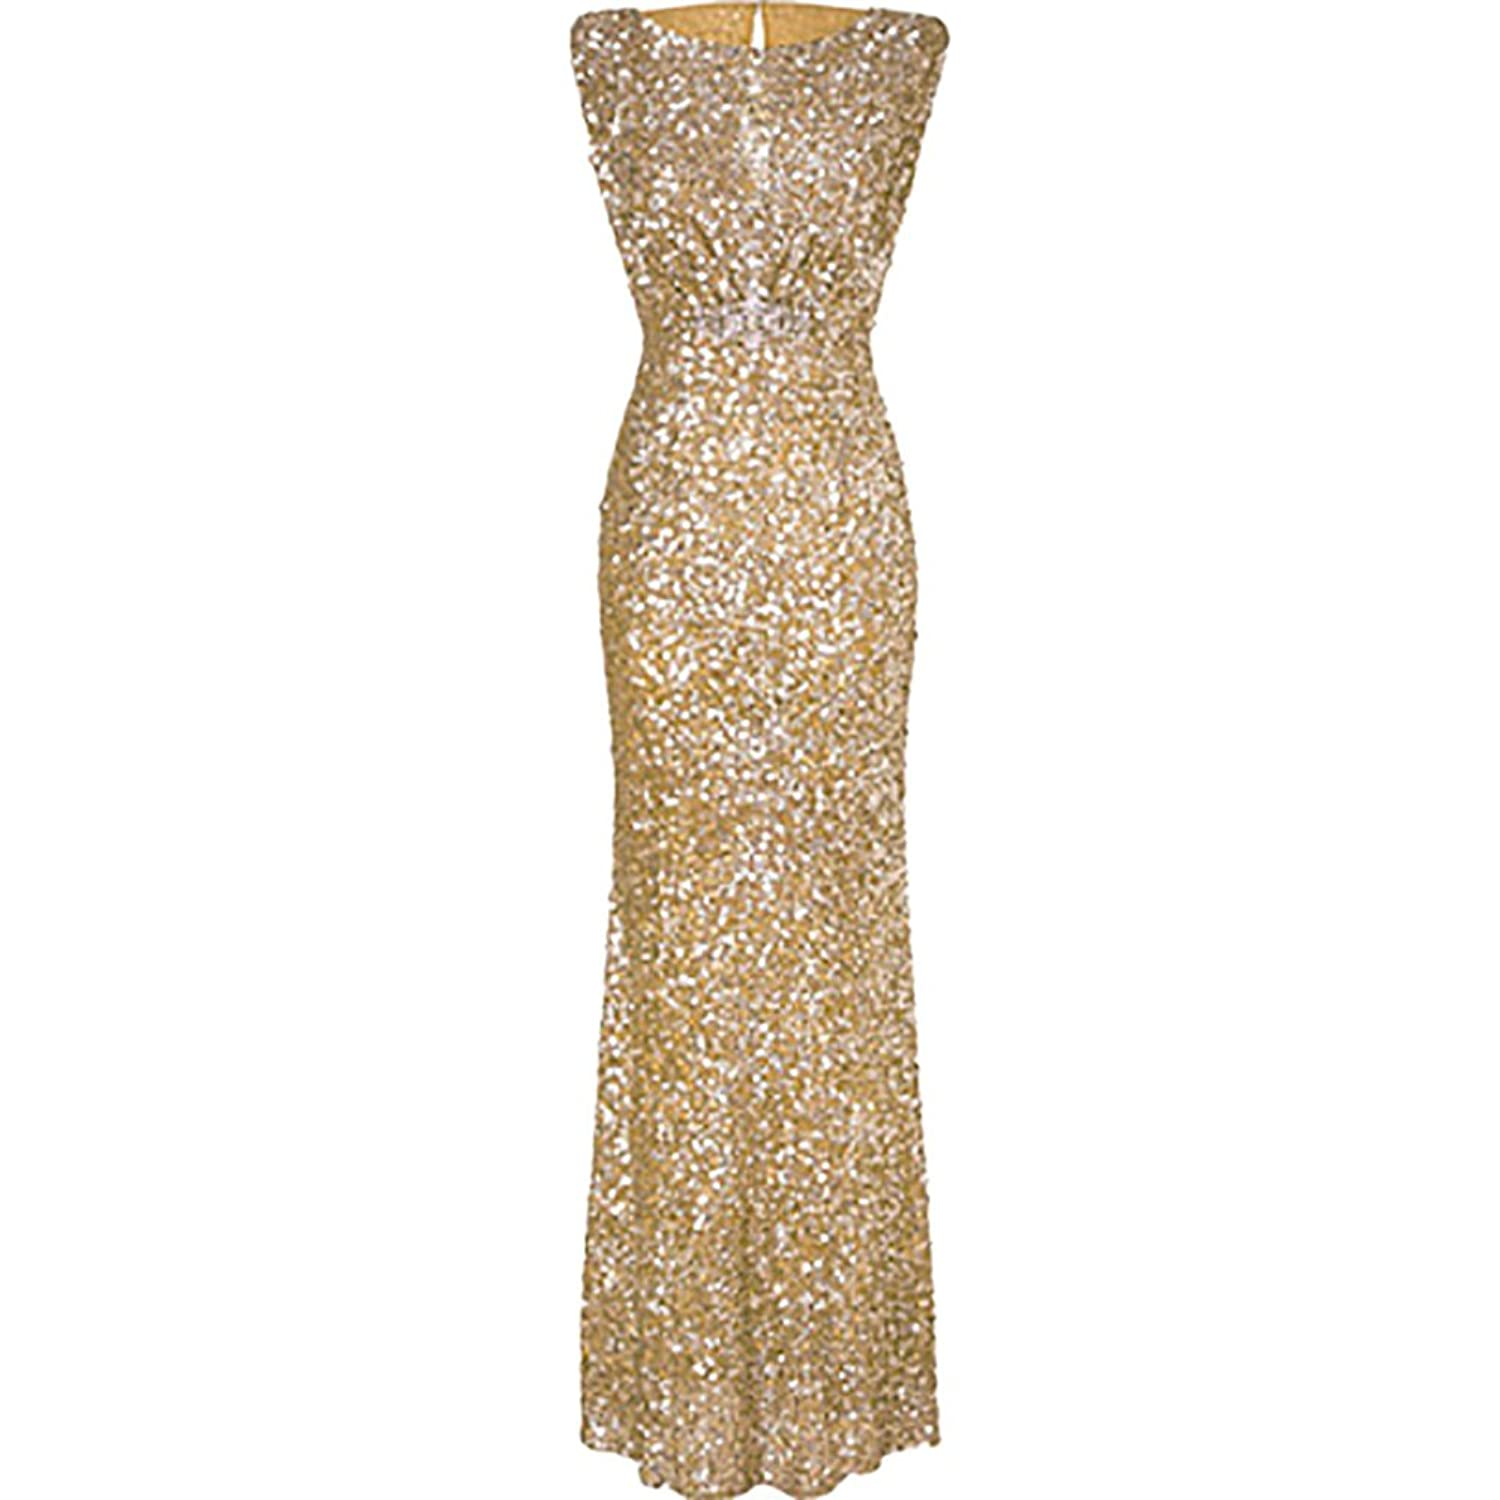 934ed2229fd5 iShine Women's Sparkling Sequins Prom Party Dress Sexy Backless Sleeveless  Full Length Evening Dress O Neck / Double V Neck at Amazon Women's Clothing  store ...